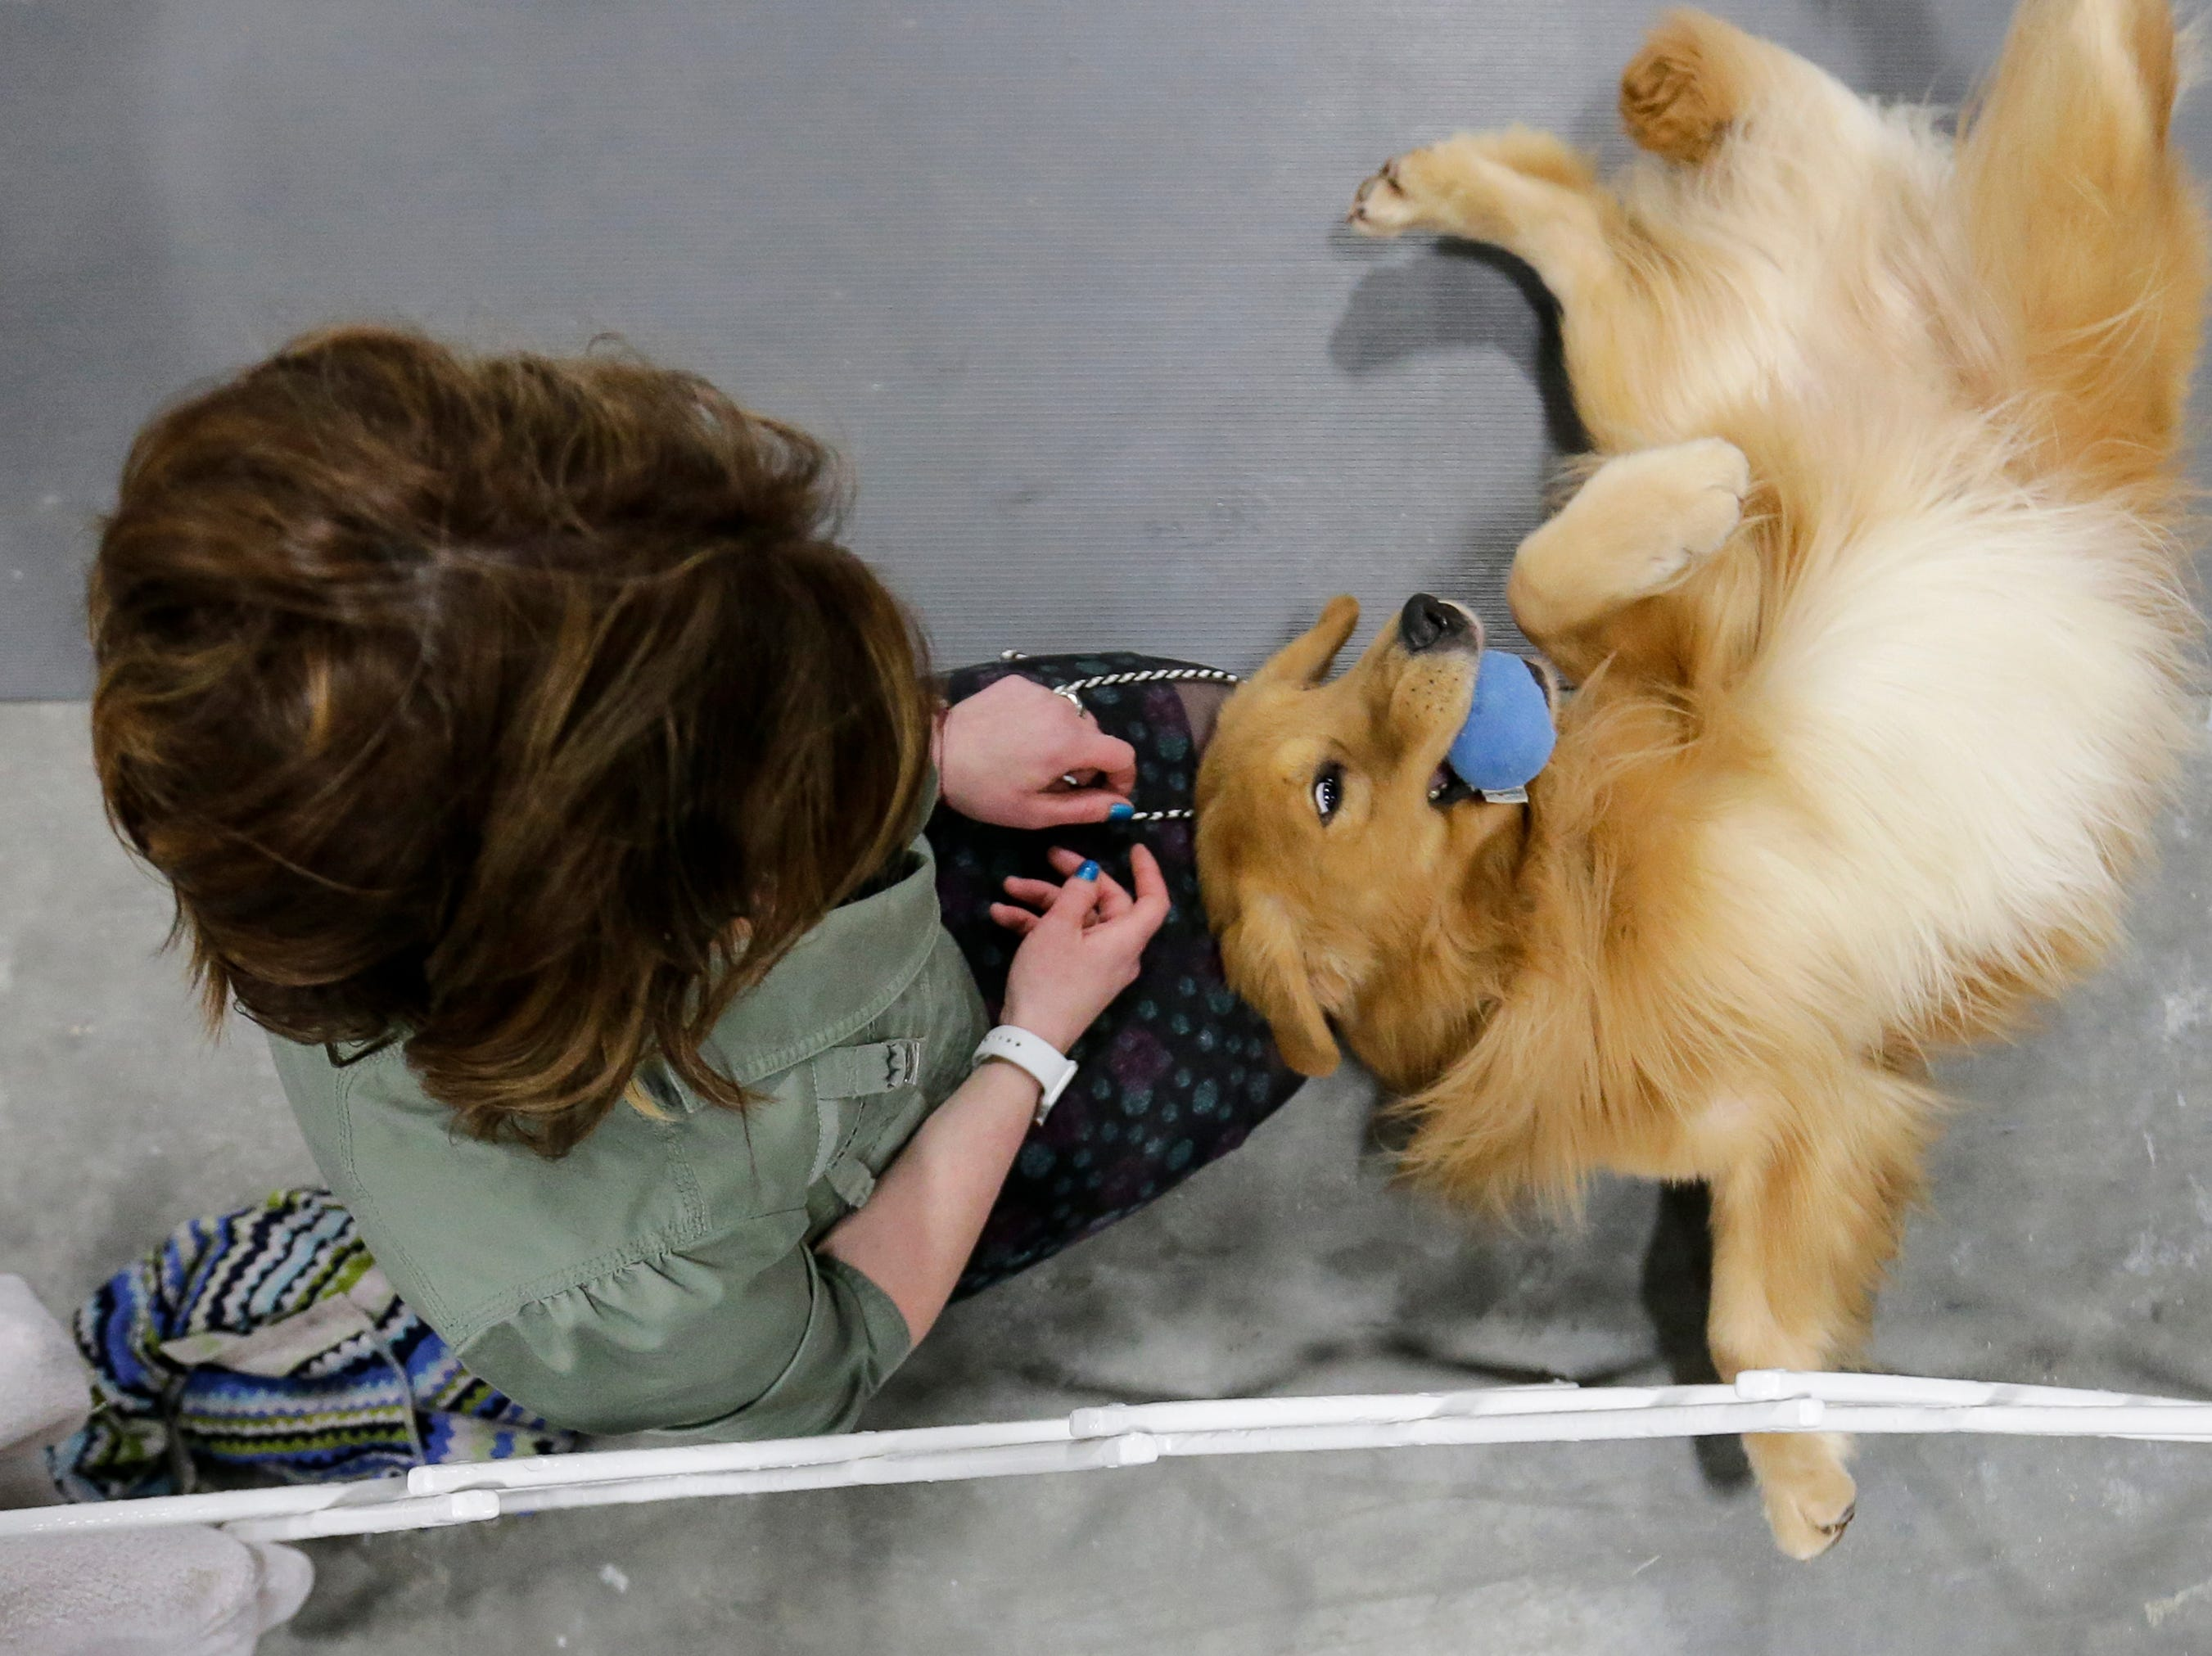 Jennifer Hoffman, of Elkhart Lake, plays with her golden retriever Nico while waiting for the judge of the sporting group show during the Northeast Wisconsin Dog Show Classic at the Manitowoc County Expo Center Thursday, March 28, 2019, in Manitowoc, Wis. Joshua Clark/USA TODAY NETWORK-Wisconsin